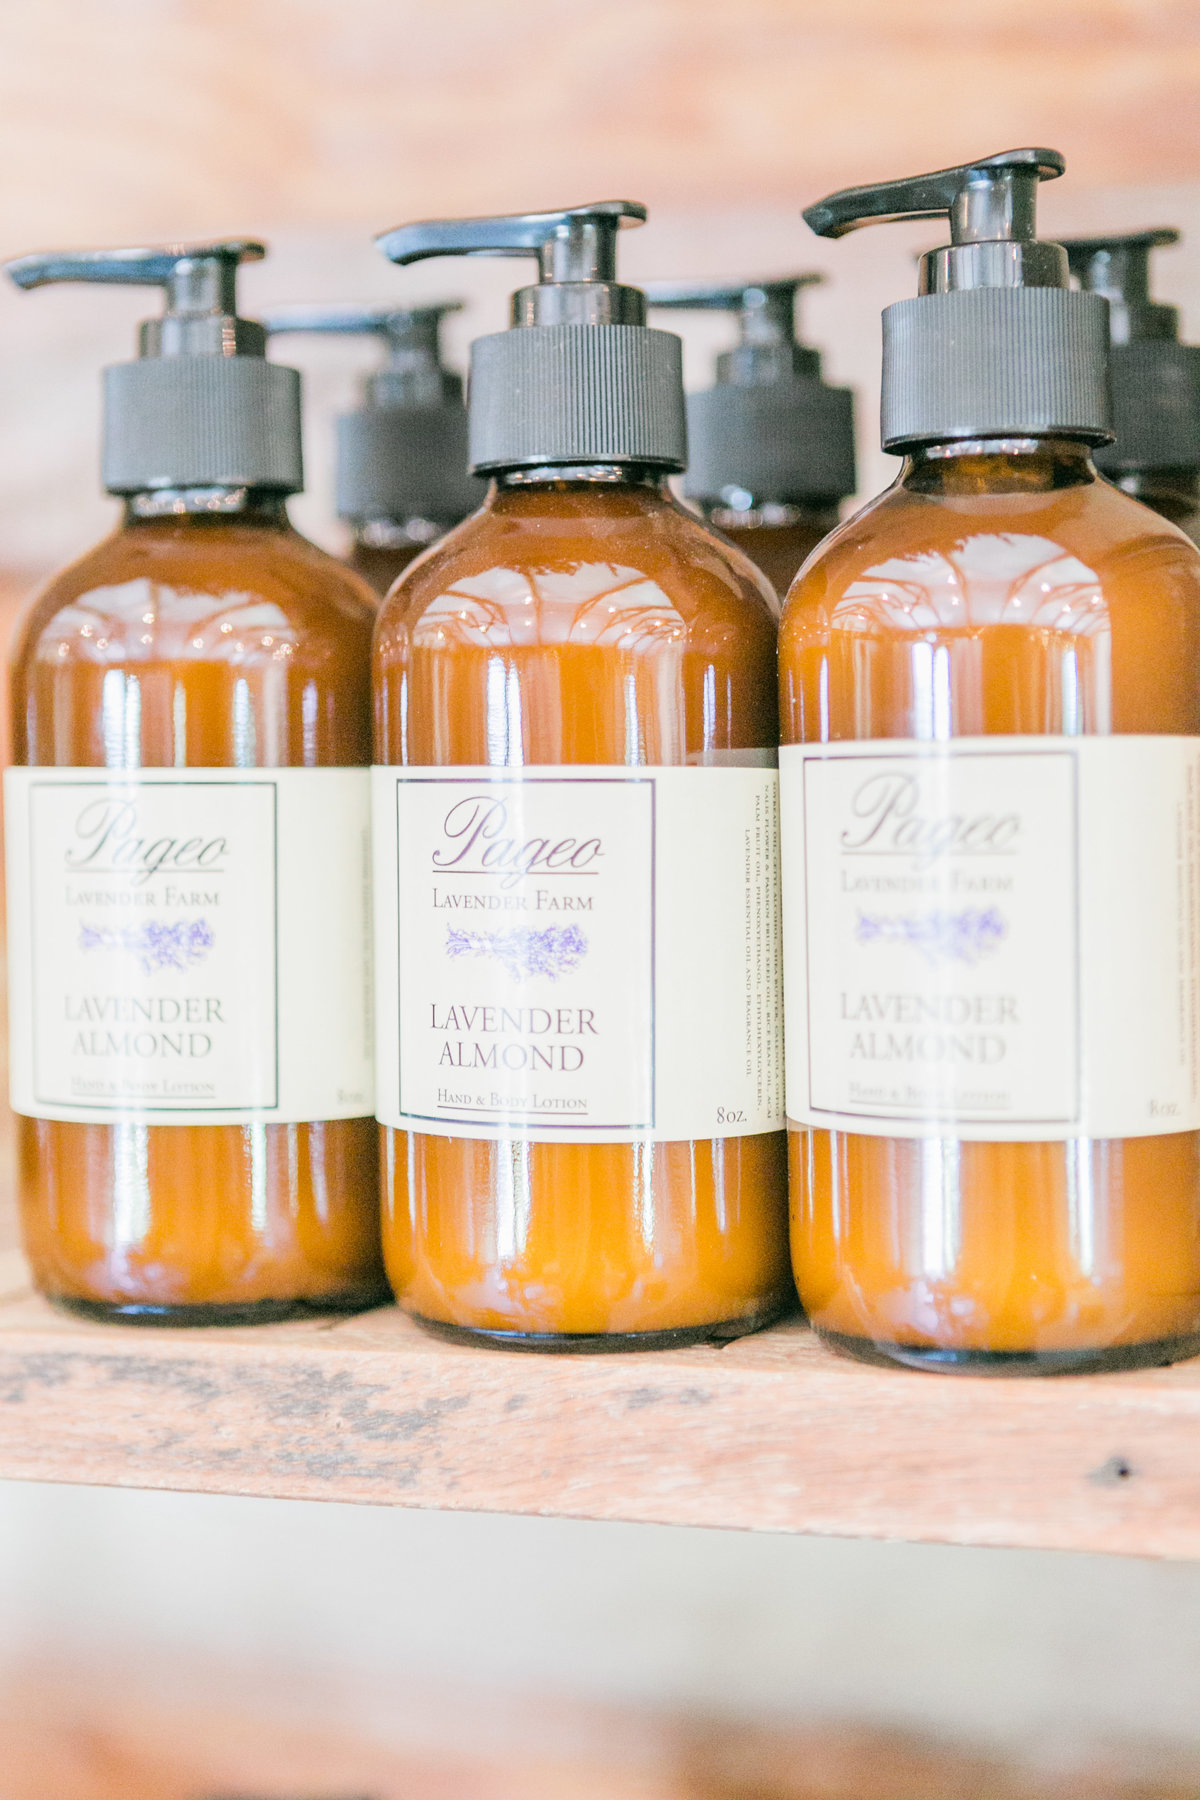 Pageo Lavender Almond Lotion